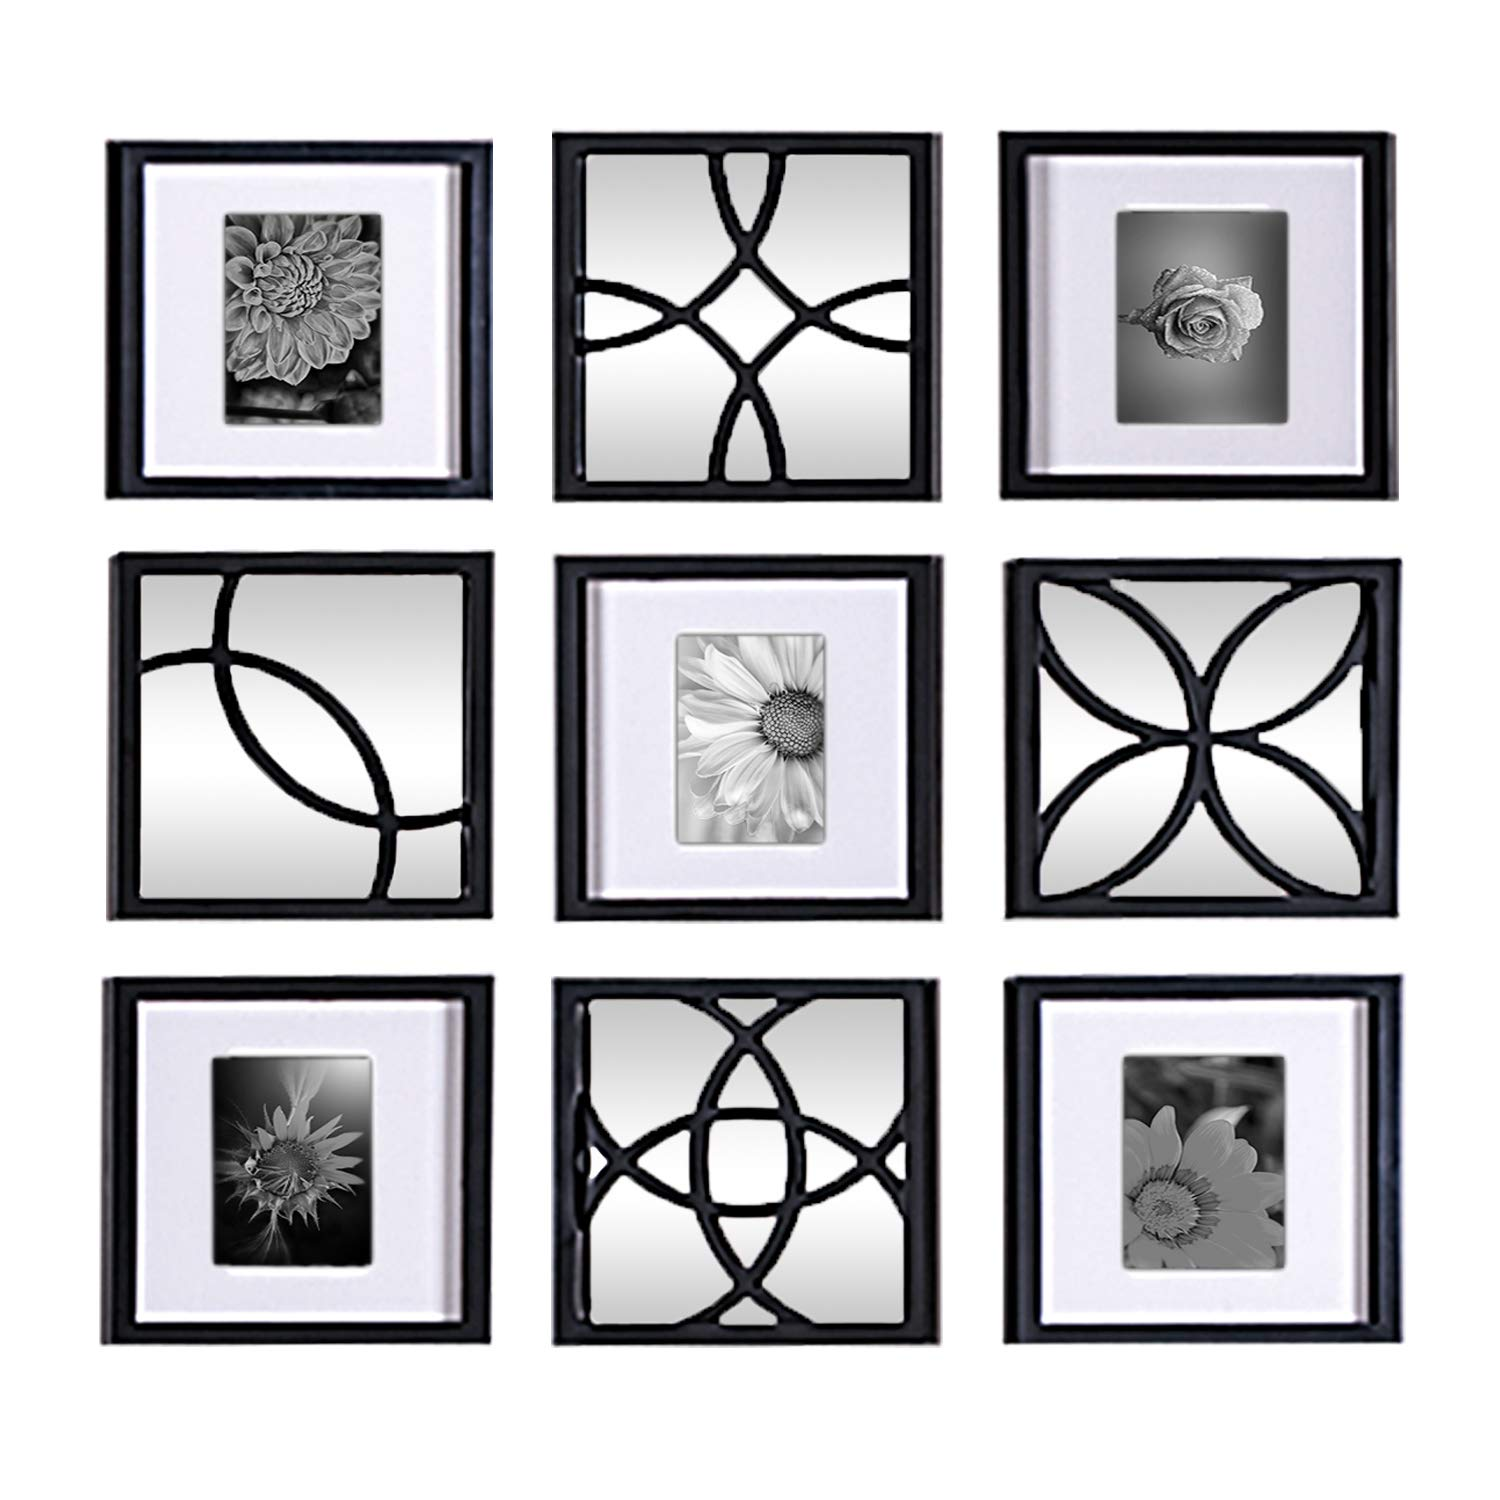 Jerry & Maggie - Total 9 Pieces of Photo Frame & Wall Mirror - Wall Decor Combination - Black PVC Picture Frame Selfie Gallery Collage Wall Hanging For (9x9 matted to 6x4) Photo - Wall Mounting Design by Jerry & Maggie